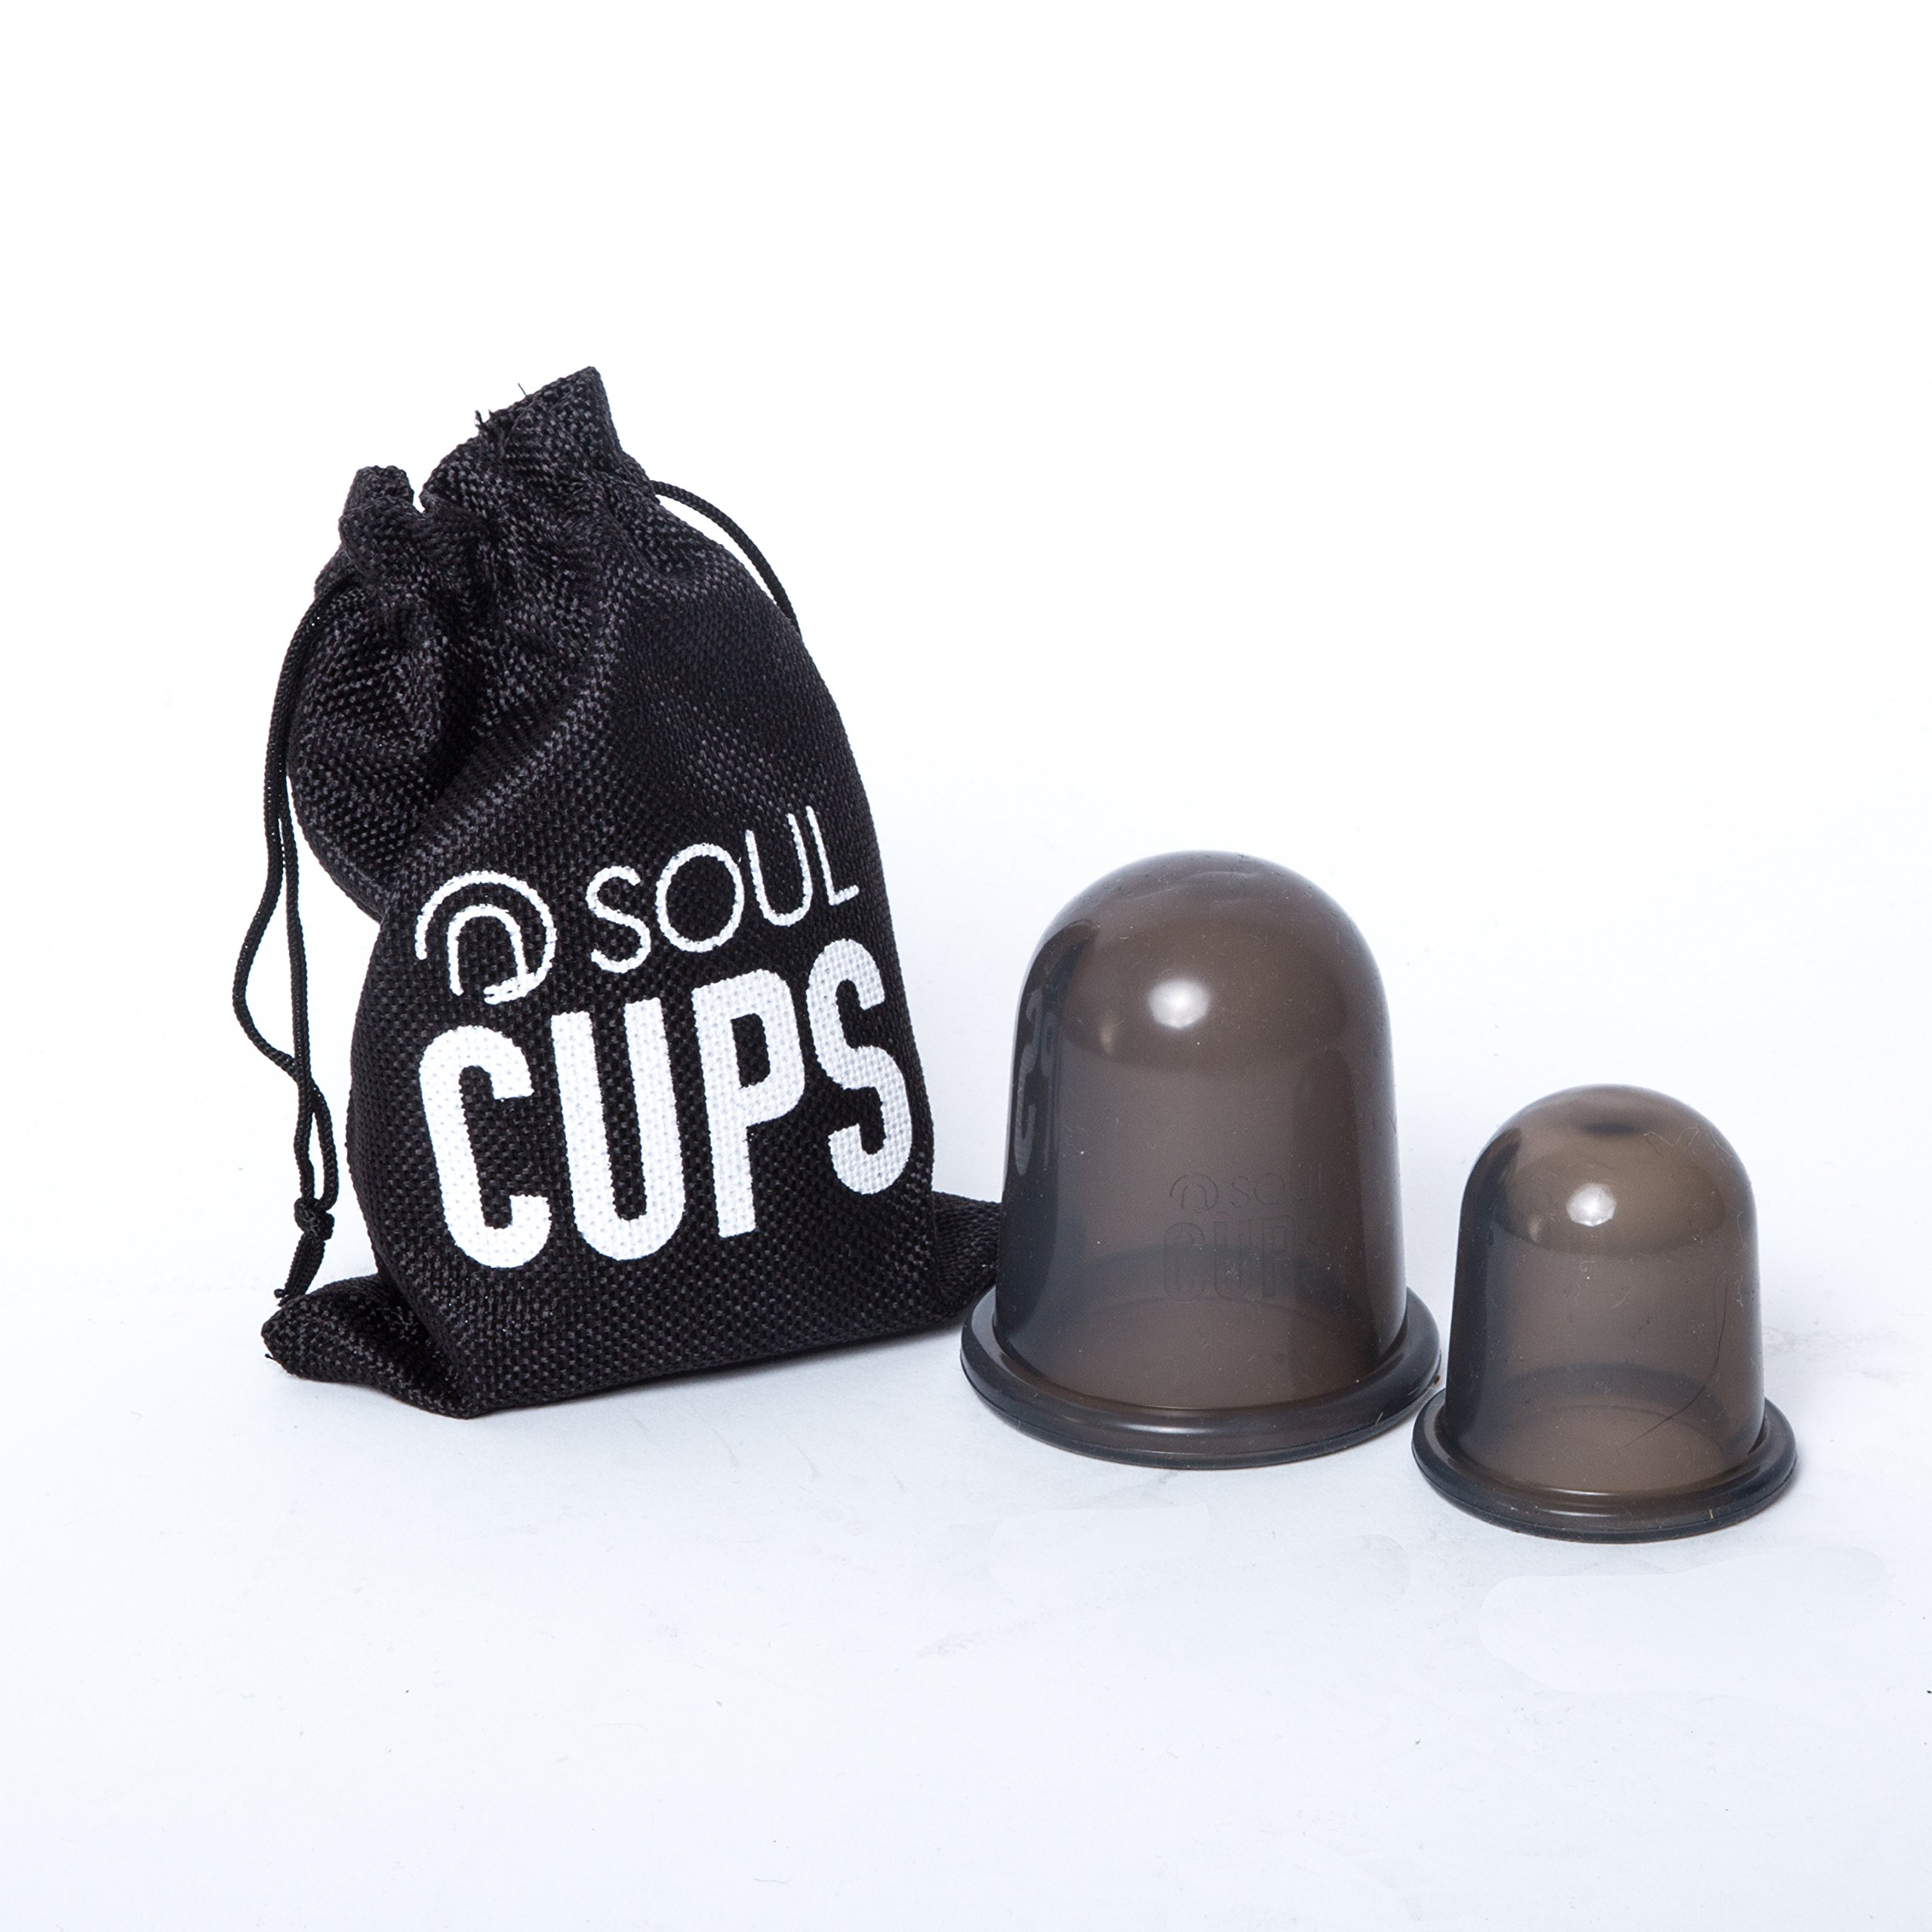 Soul Cups - Silicone Anti Cellulite Cup Set for Cupping Massage Therapy and EBook